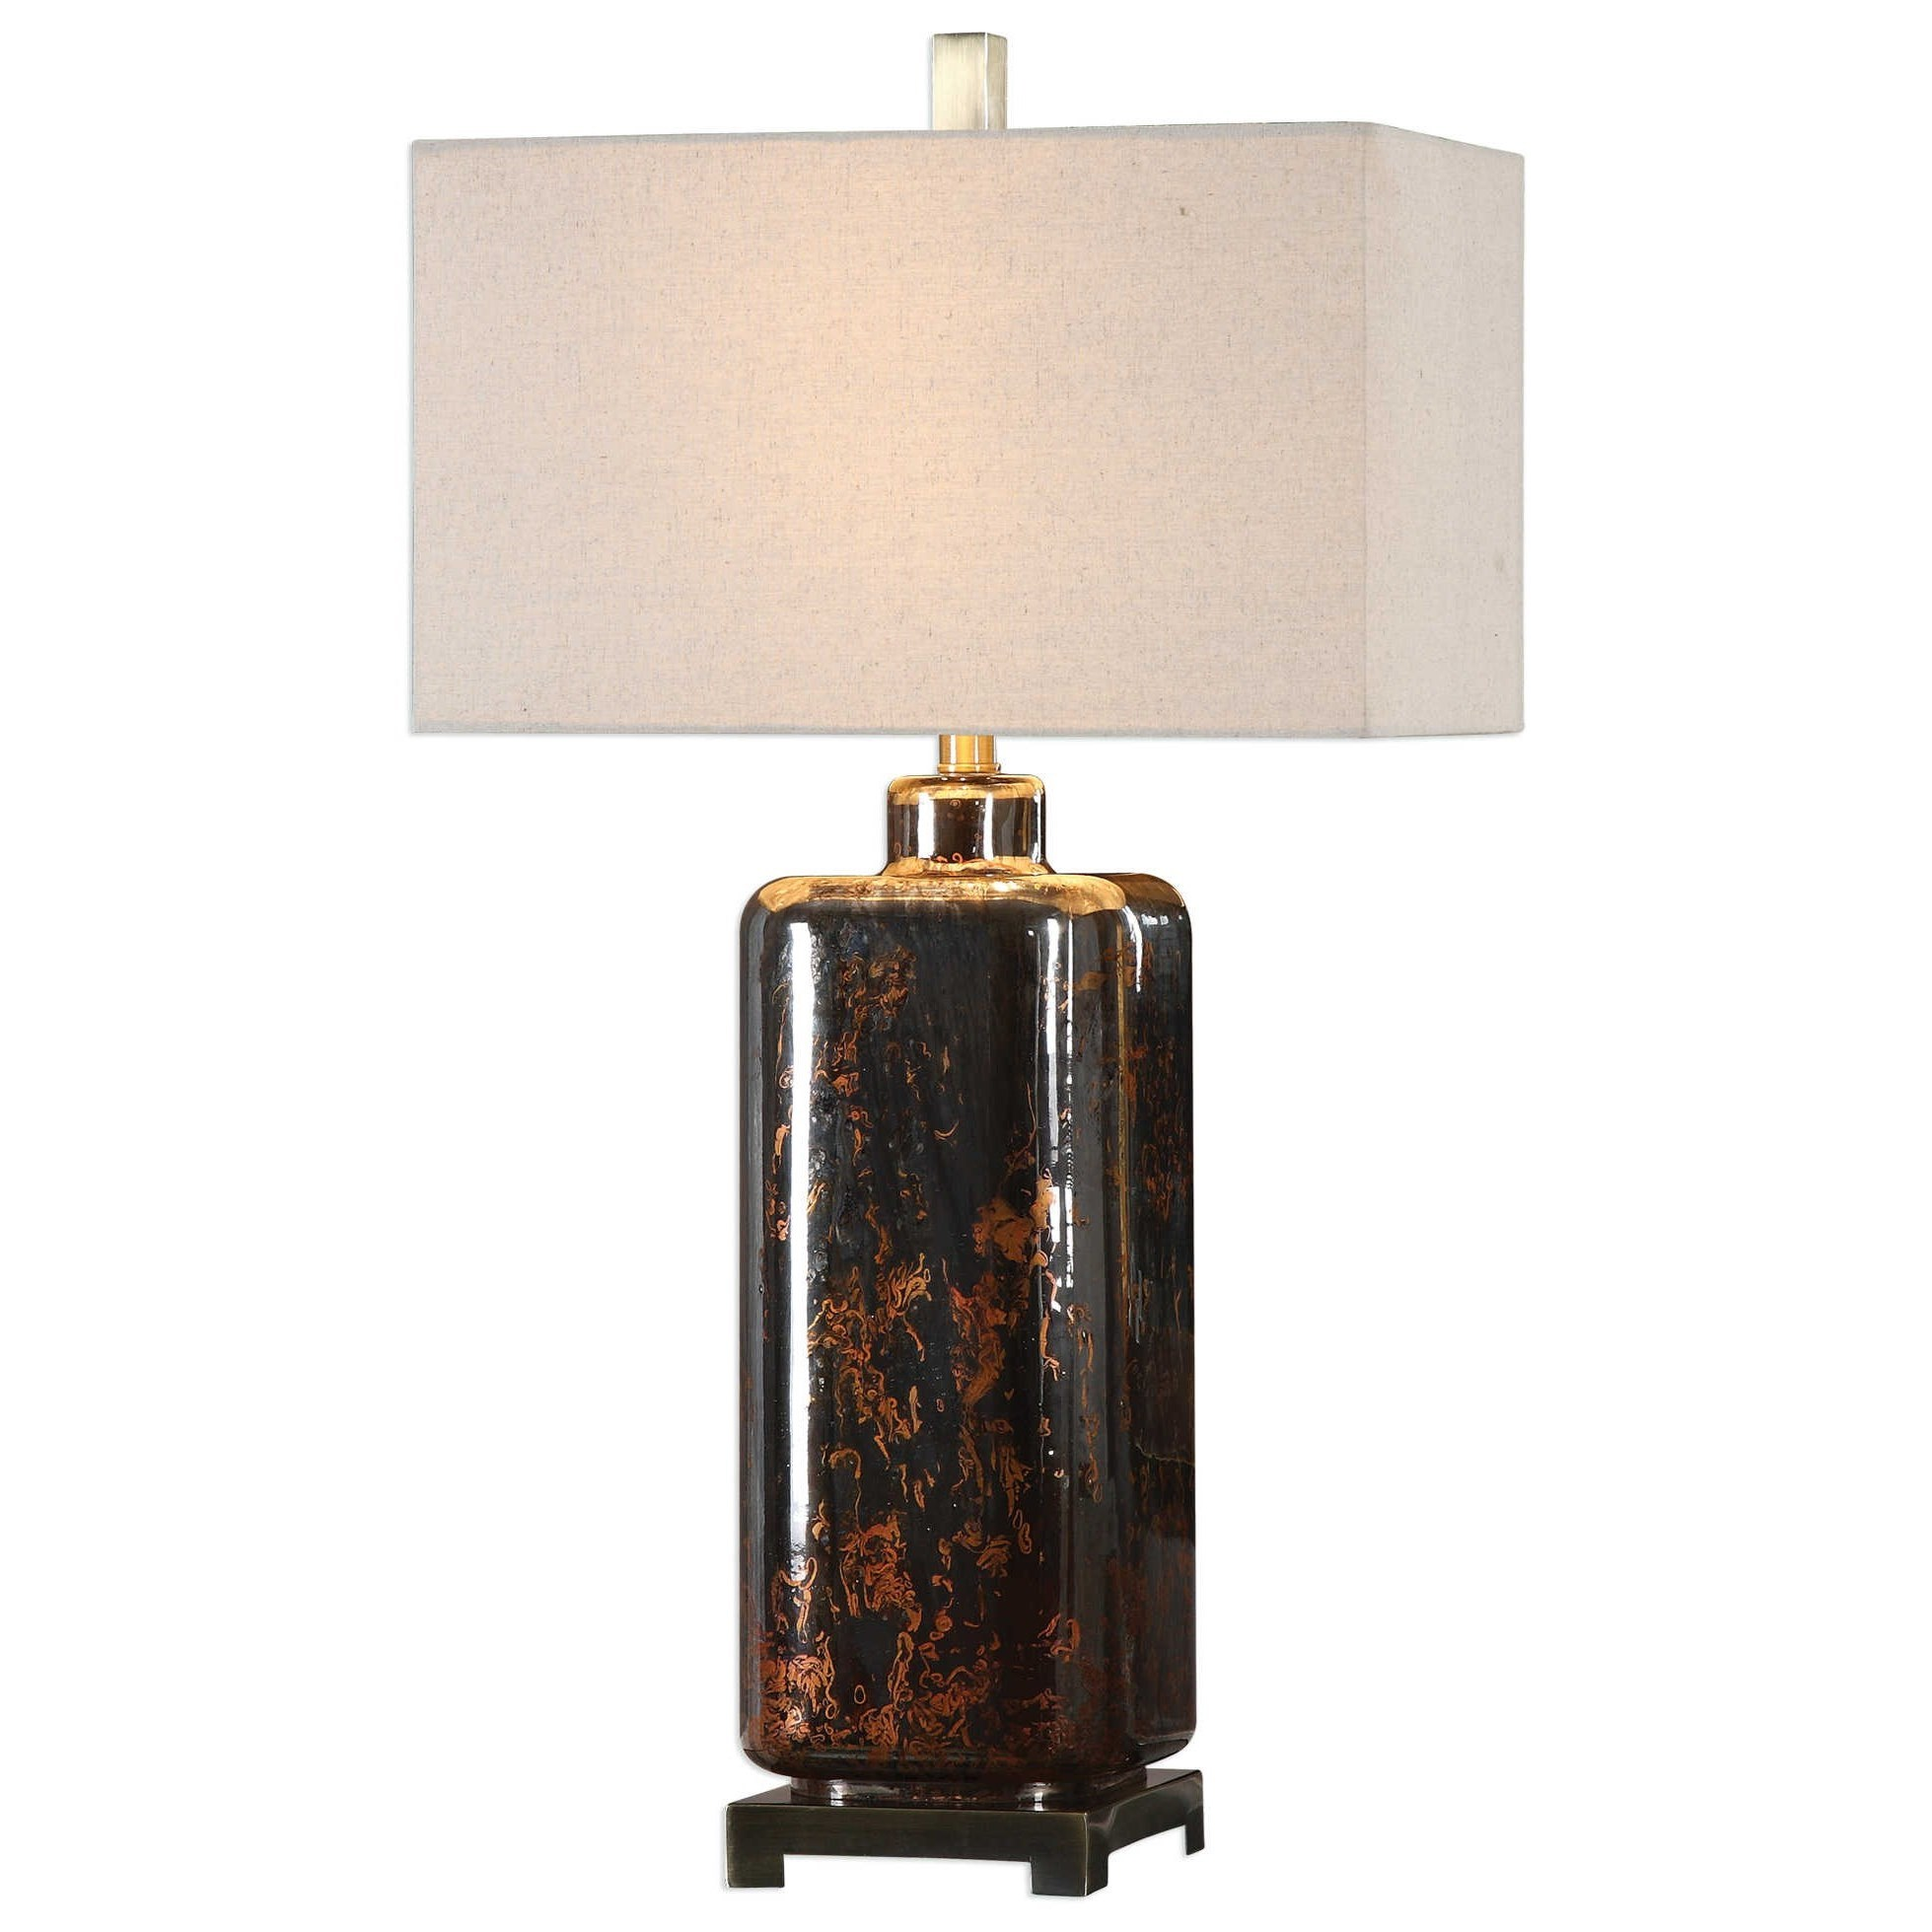 Uttermost Lamps Vanoise Bronze Mercury Glass Lamp - Item Number: 27710-1